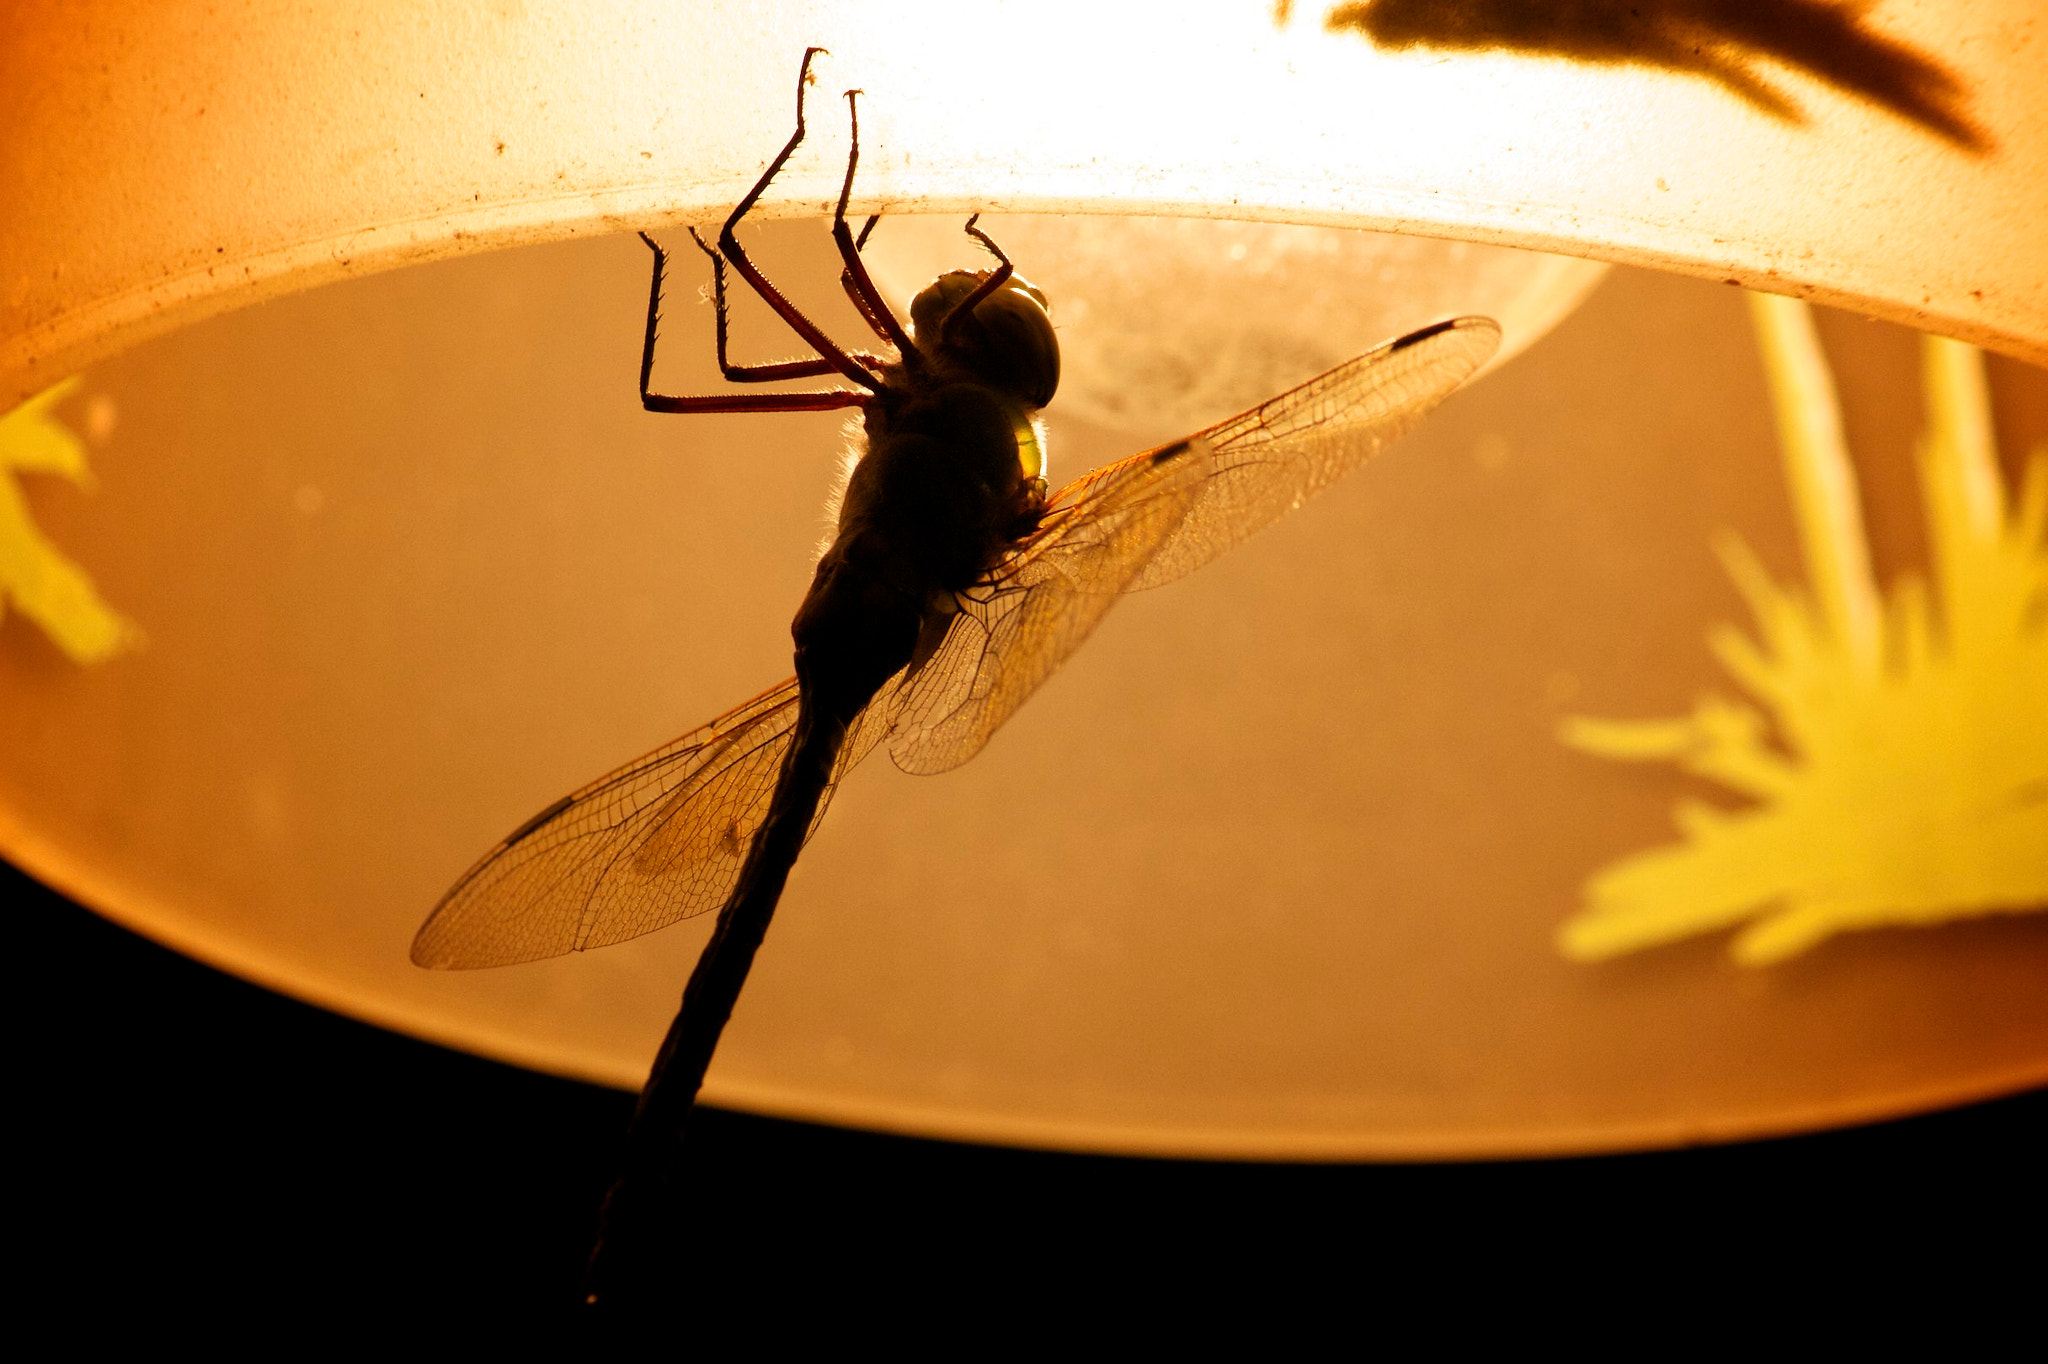 Photograph Giant Dragonfly by Michelle Sypult on 500px